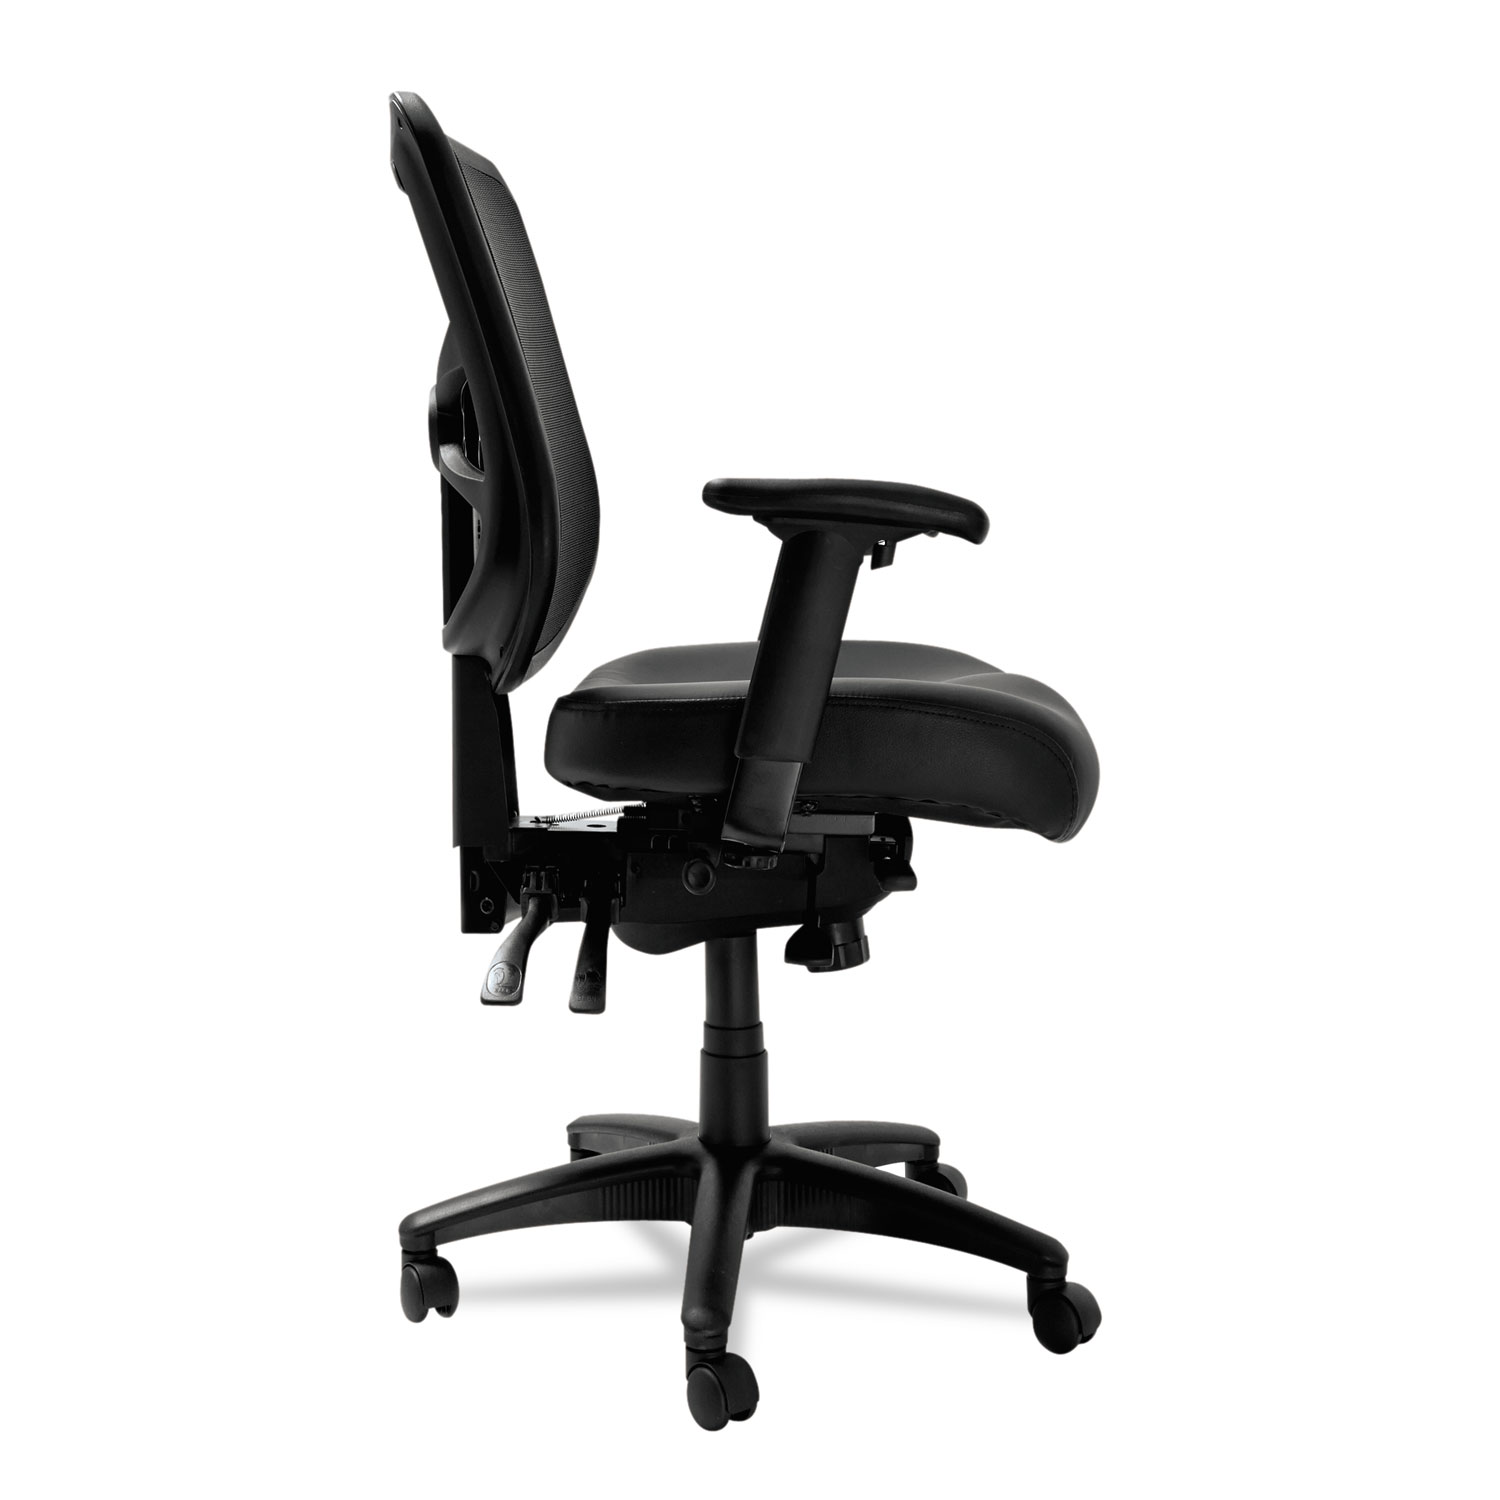 Delicieux Alera Elusion Series Mesh Mid Back Multifunction Chair, Black Leather.  ALEEL4215 Thumbnail. ALEEL4215 Thumbnail 1 ALEEL4215 Thumbnail 2 ALEEL4215  Thumbnail ...